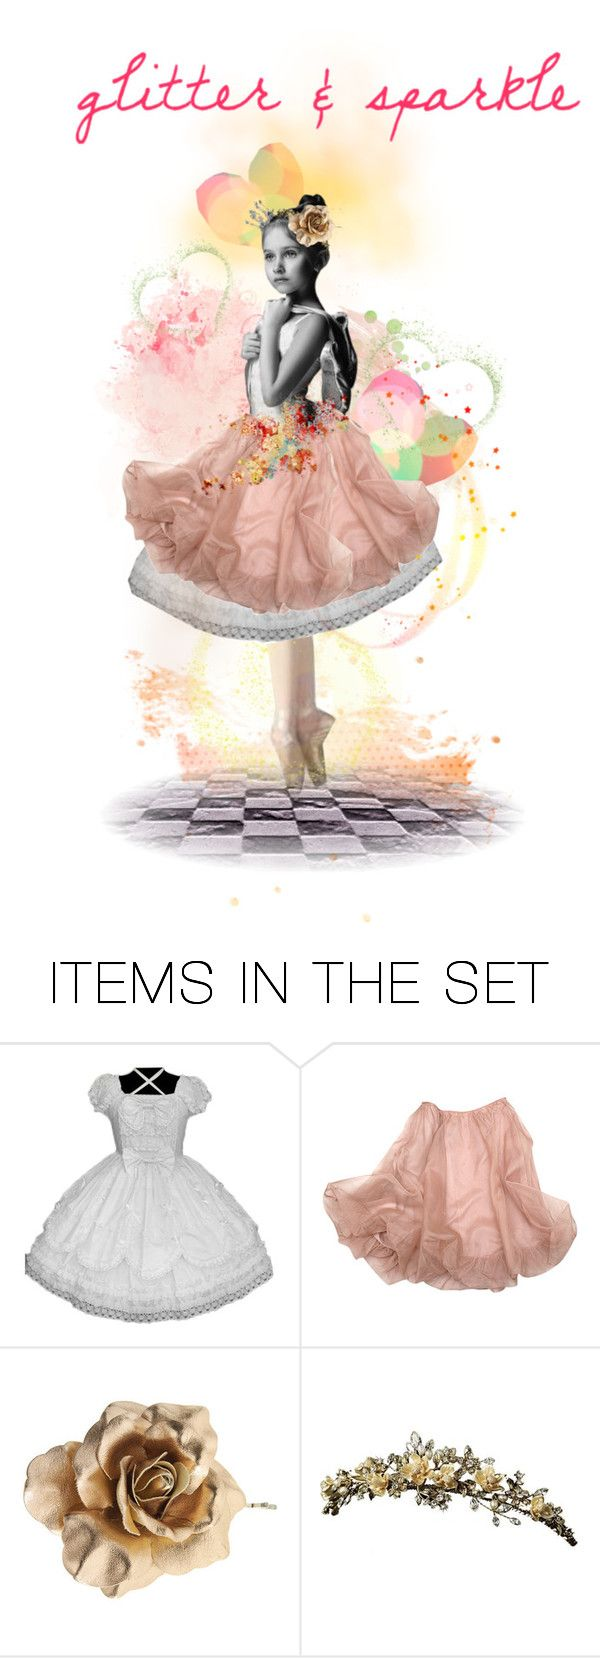 """Twirl Ballerina twirl"" by glitterlady4 ❤ liked on Polyvore featuring art"